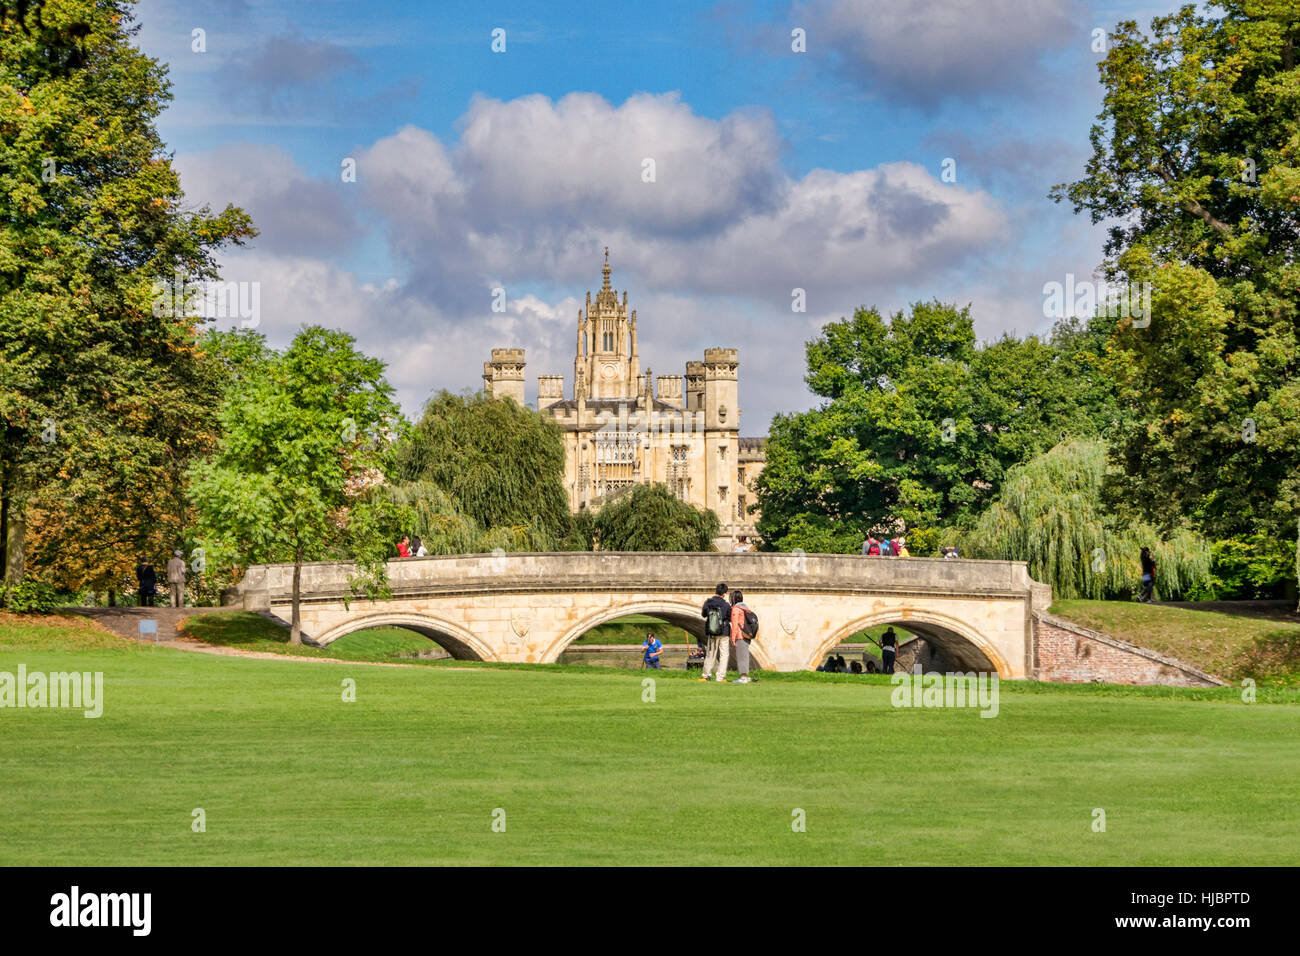 St John's College and Trinity College Bridge on the River Cam, Cambridge, England, UK - Stock Image